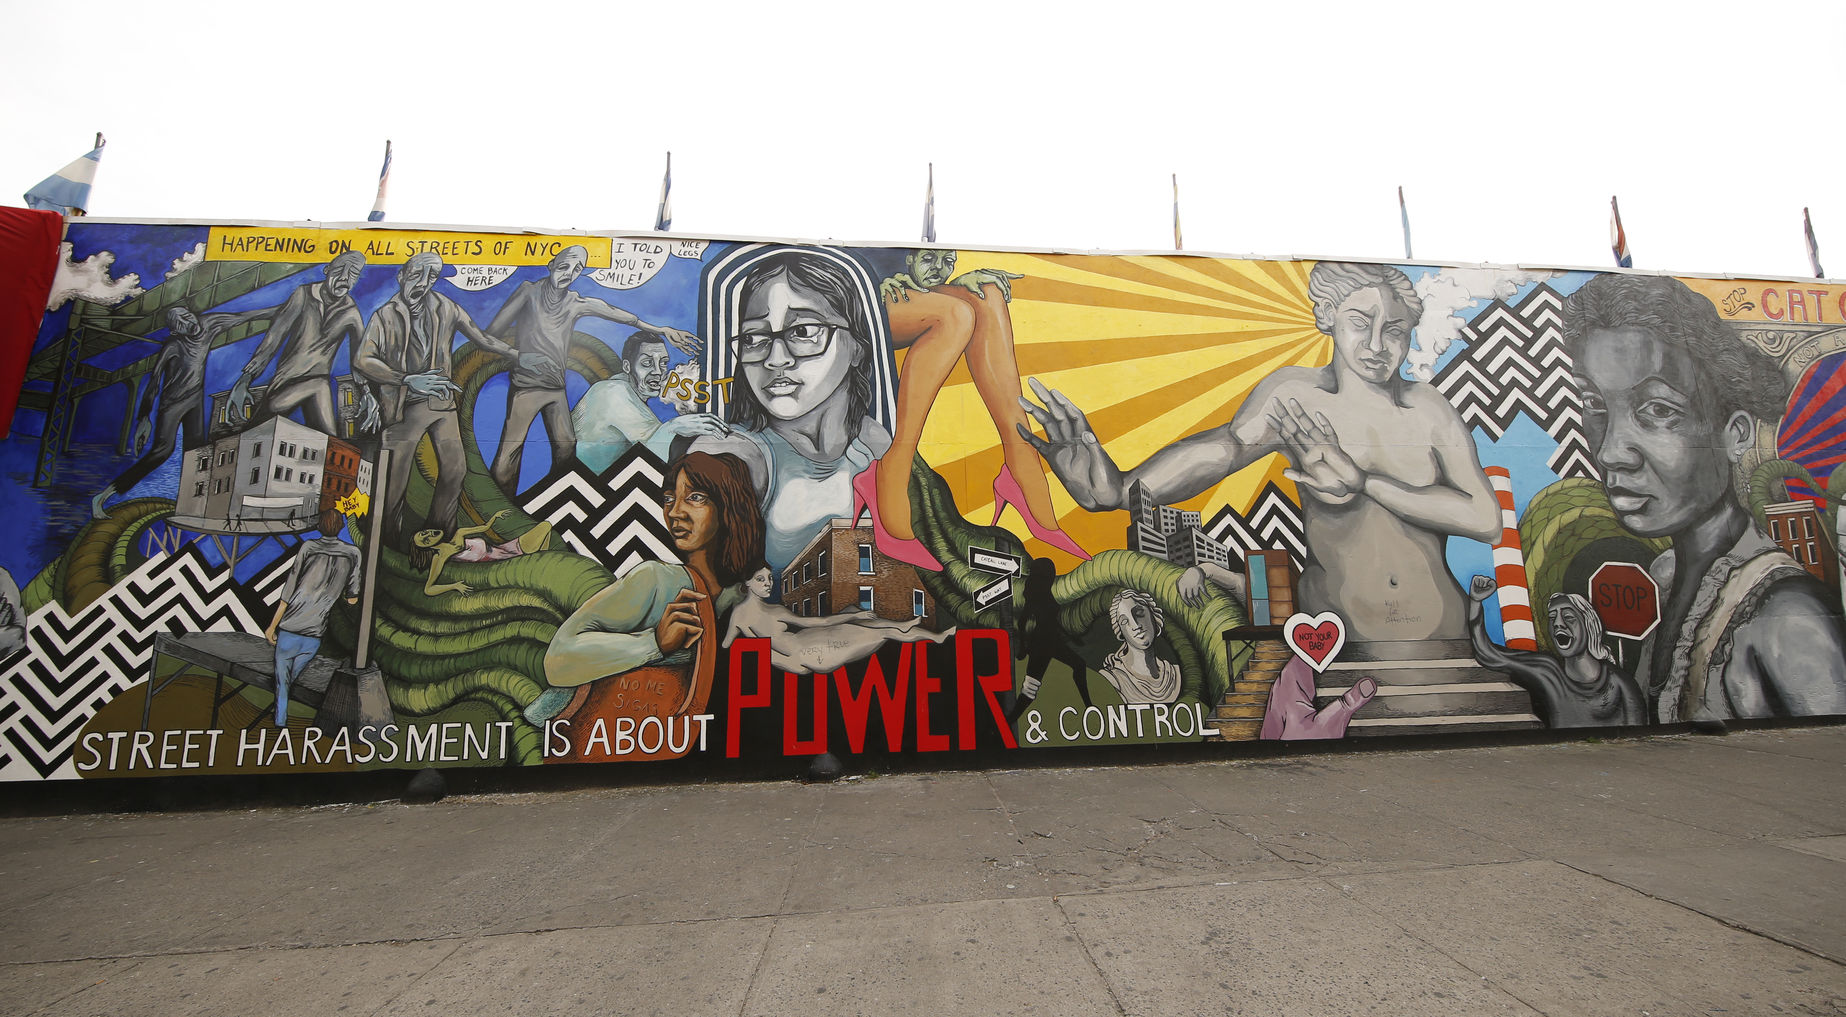 50813207 - new york - january 7, 2016: street harassment themed mural in brooklyn